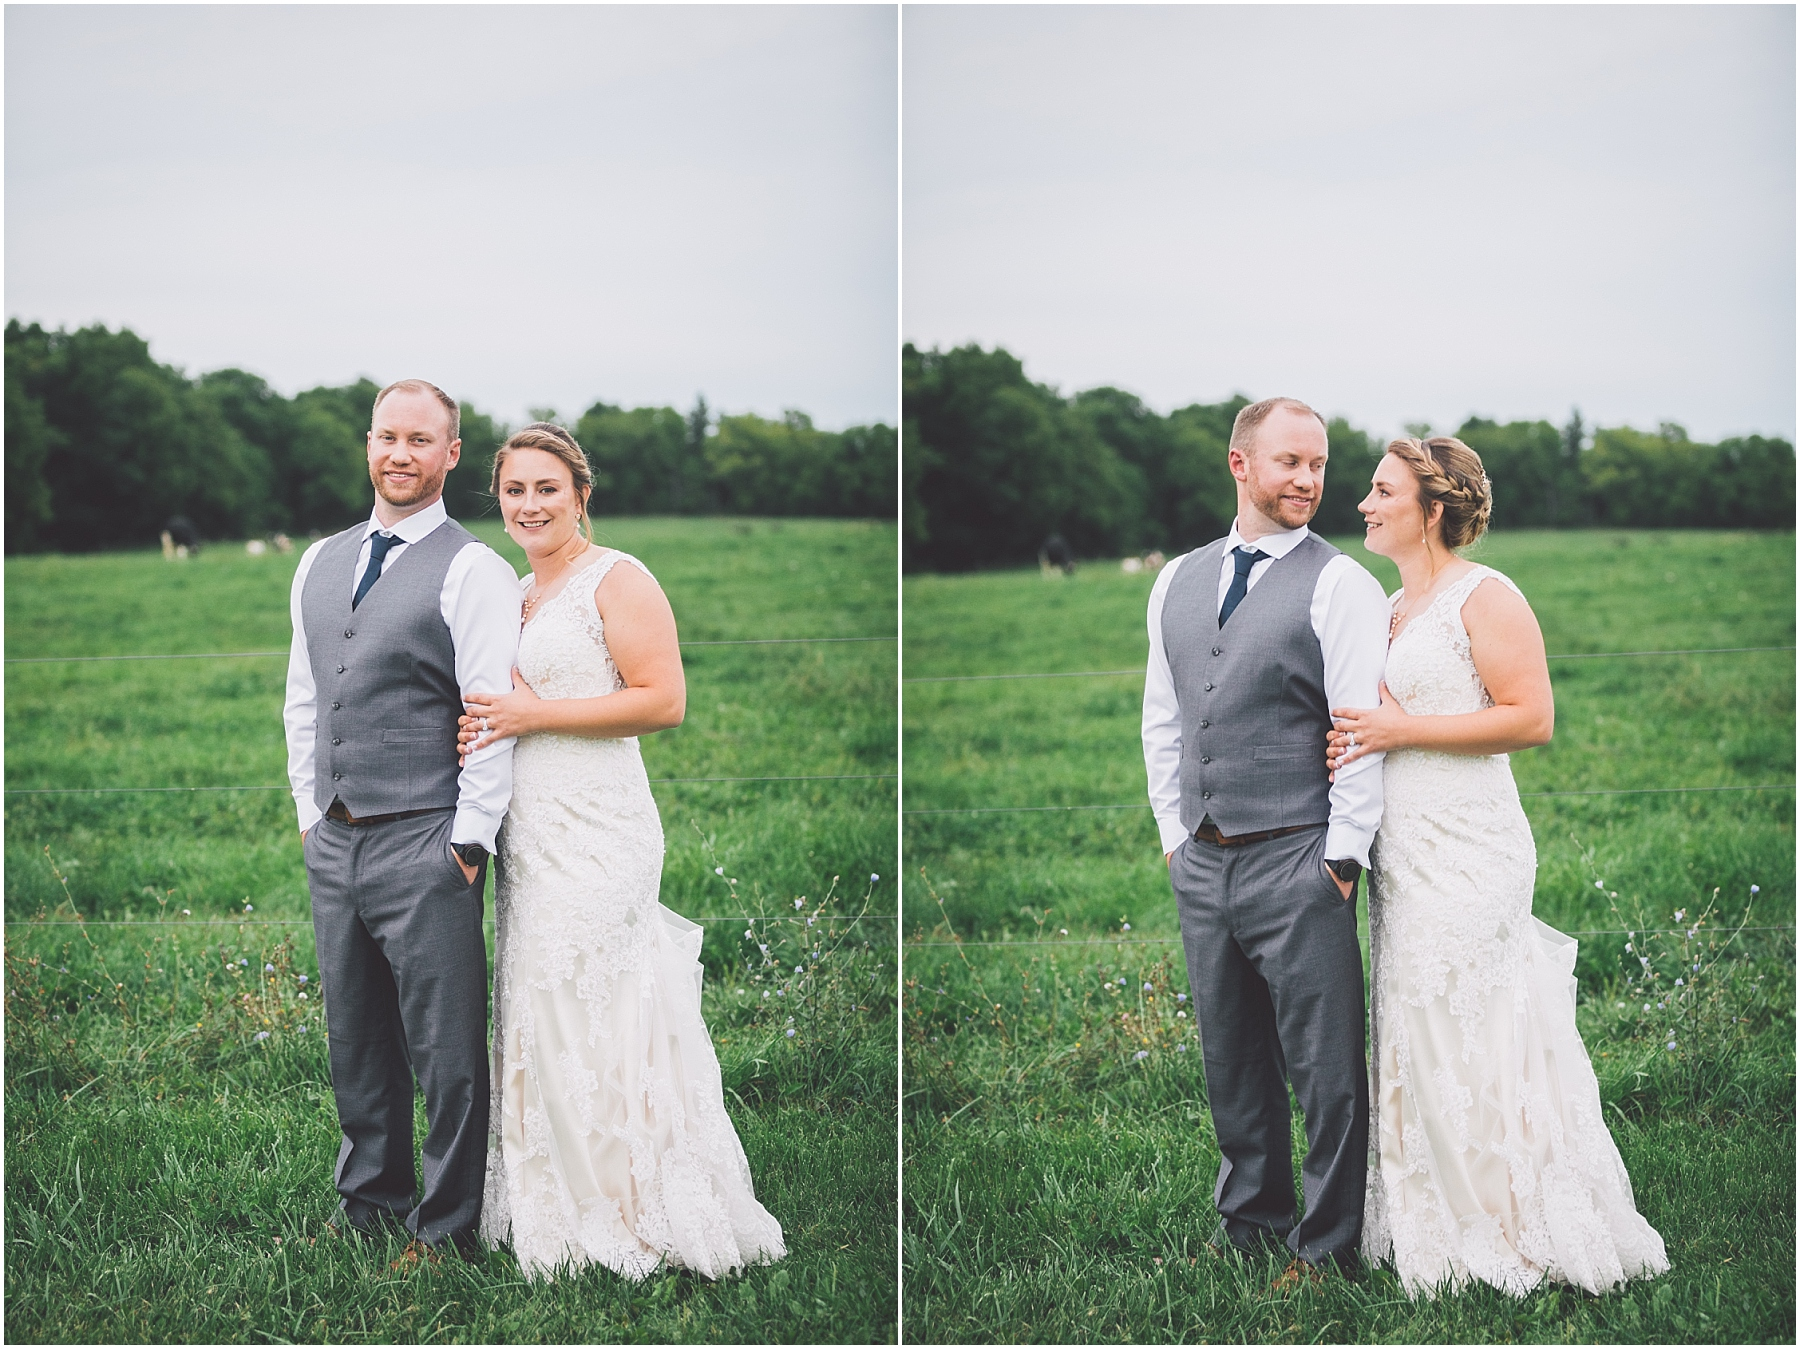 fingerlakesweddingphotography_1088.jpg